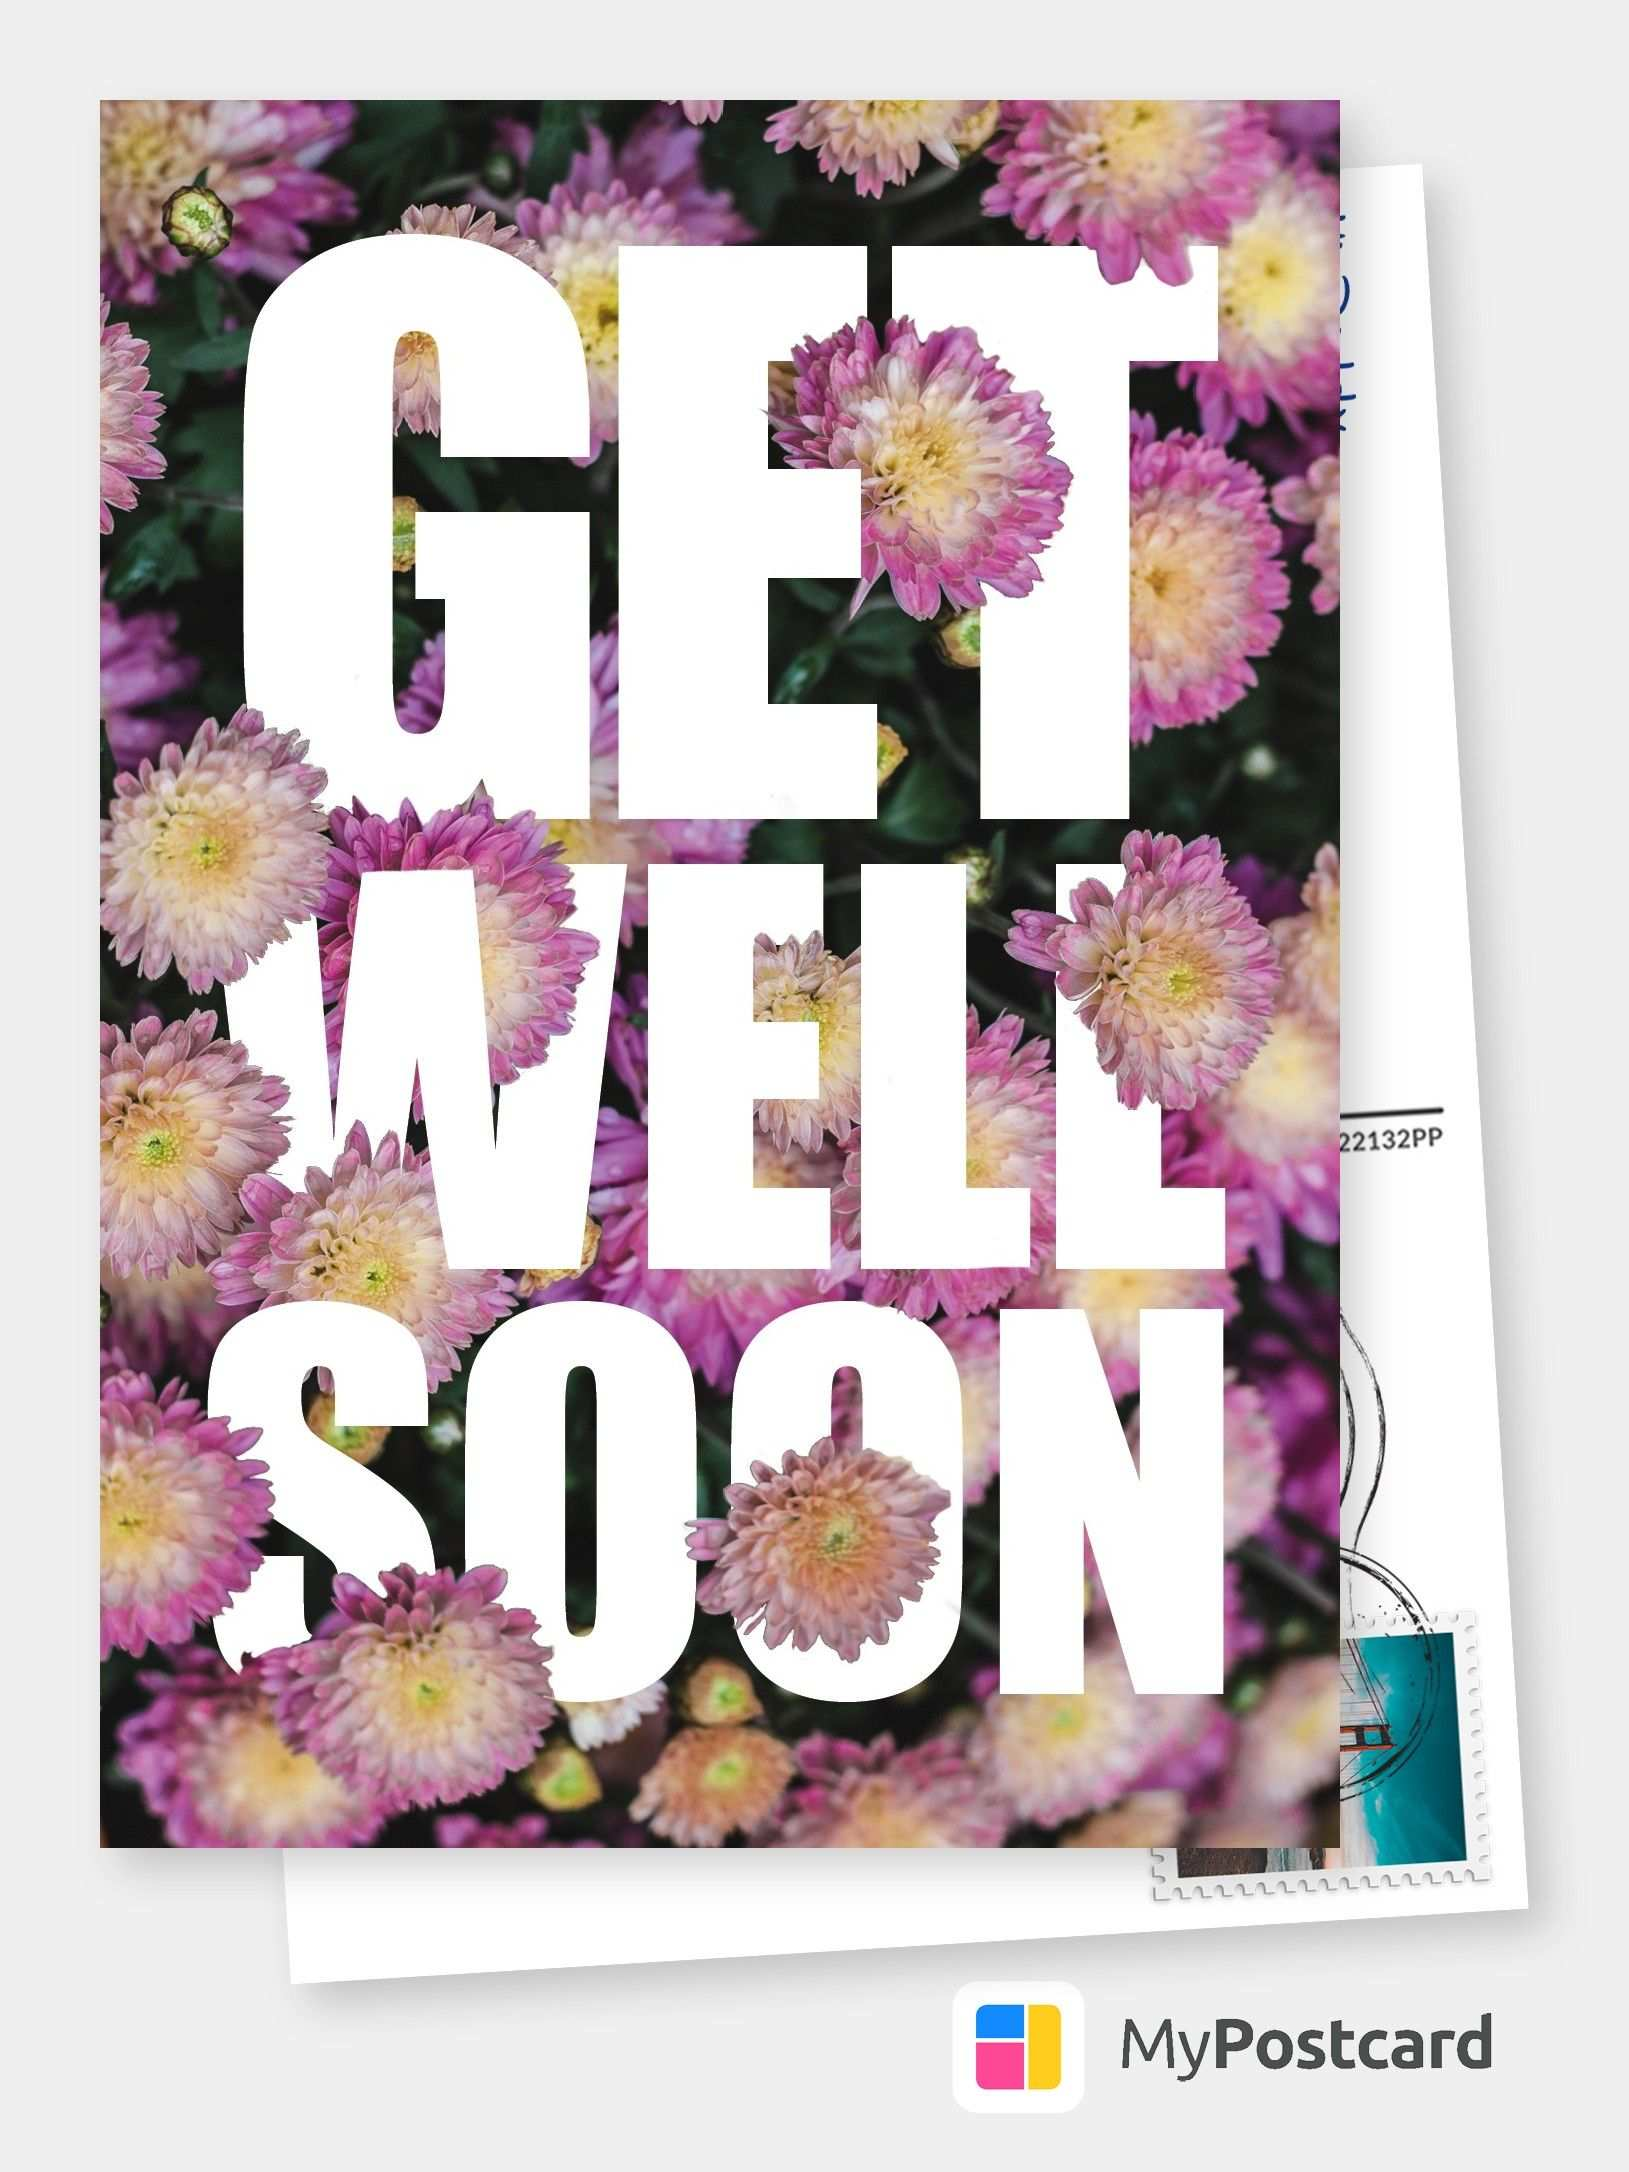 Create Your Own Get Well Soon Cards Free Printable Templates Printed Mailed For You Photo Cards Photo Postcards Greeting Cards Online Sevice Postca Gute Besserung Karte